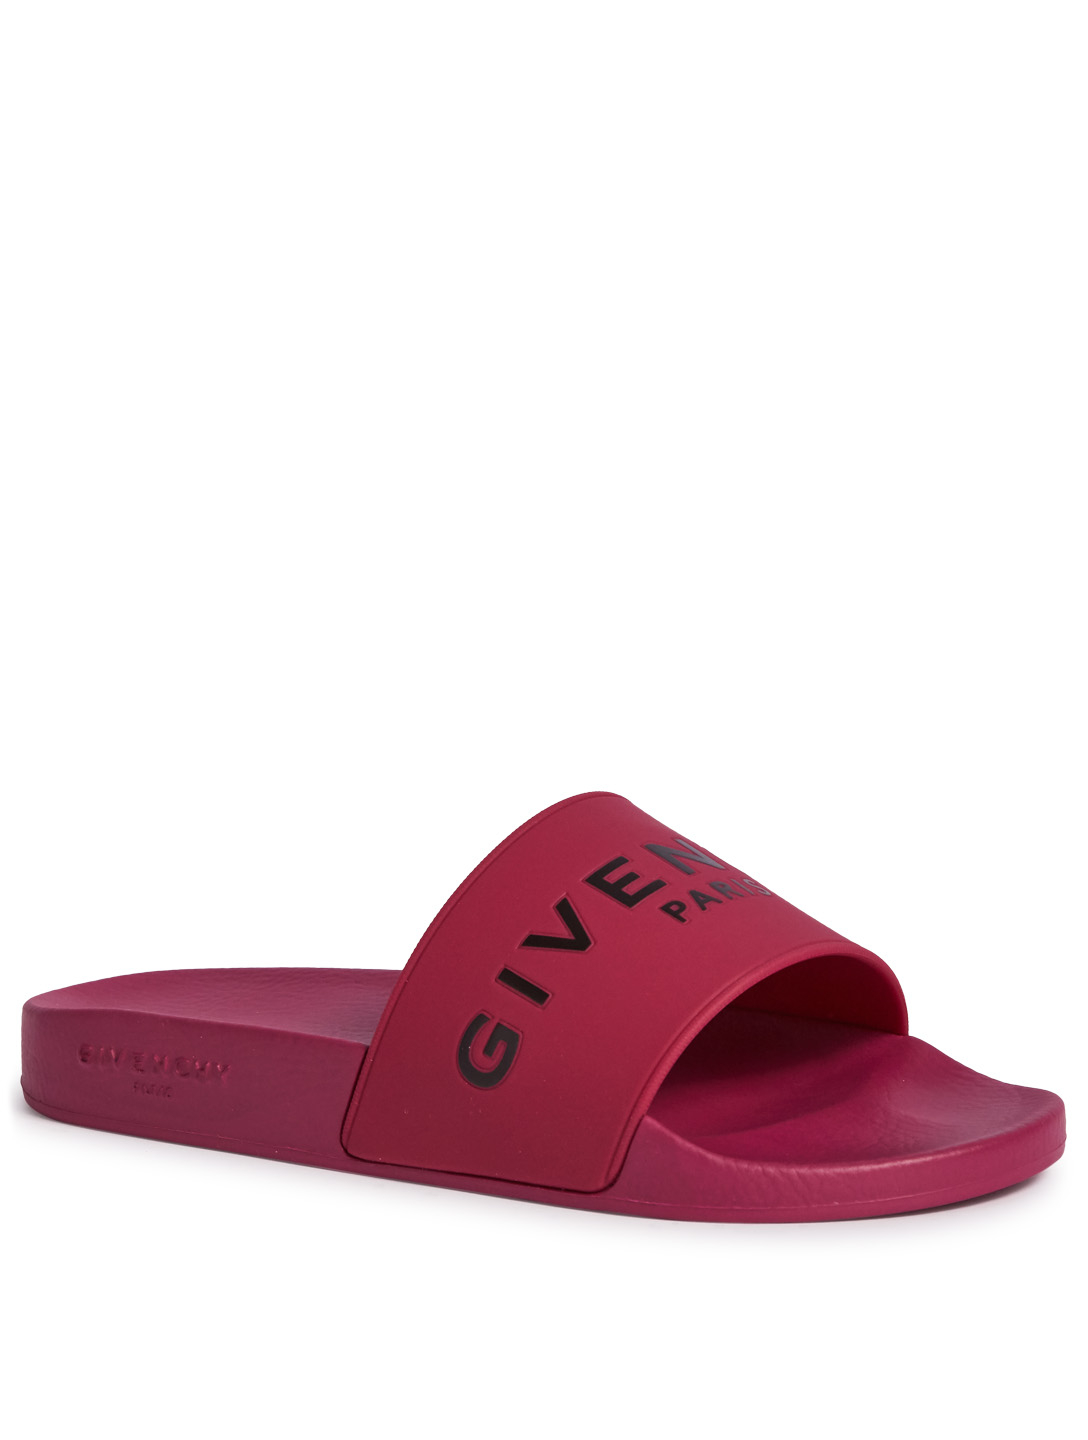 012abb094602e3 ... GIVENCHY Givenchy Paris Rubber Slides Womens Pink ...